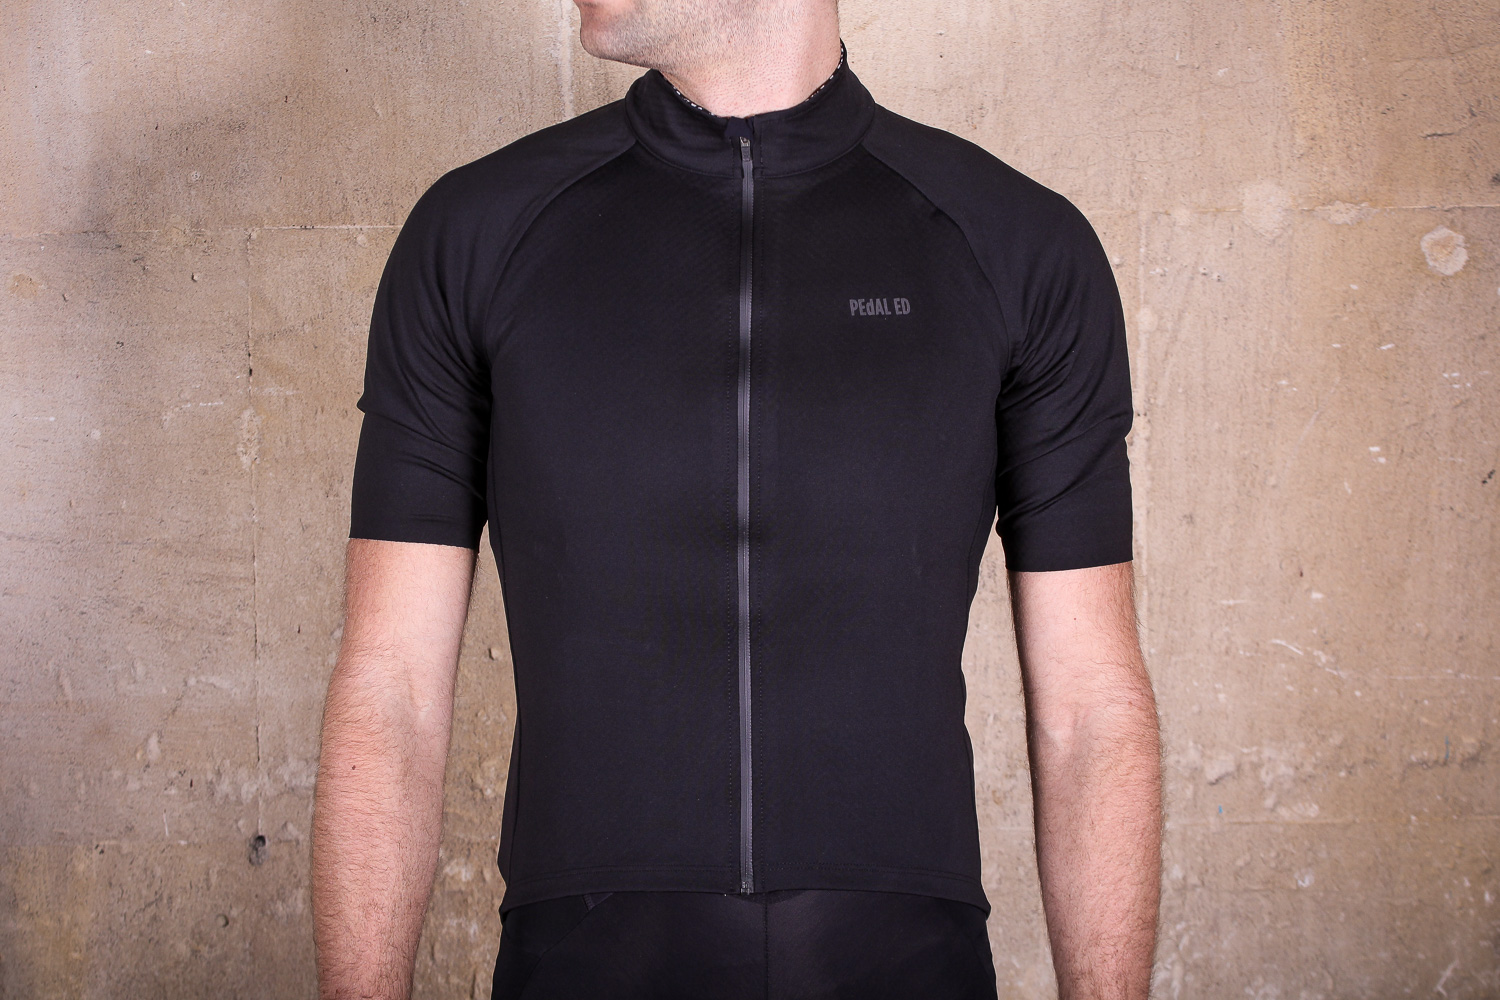 Forum on this topic: PEdALED Clothing, pedaled-clothing/